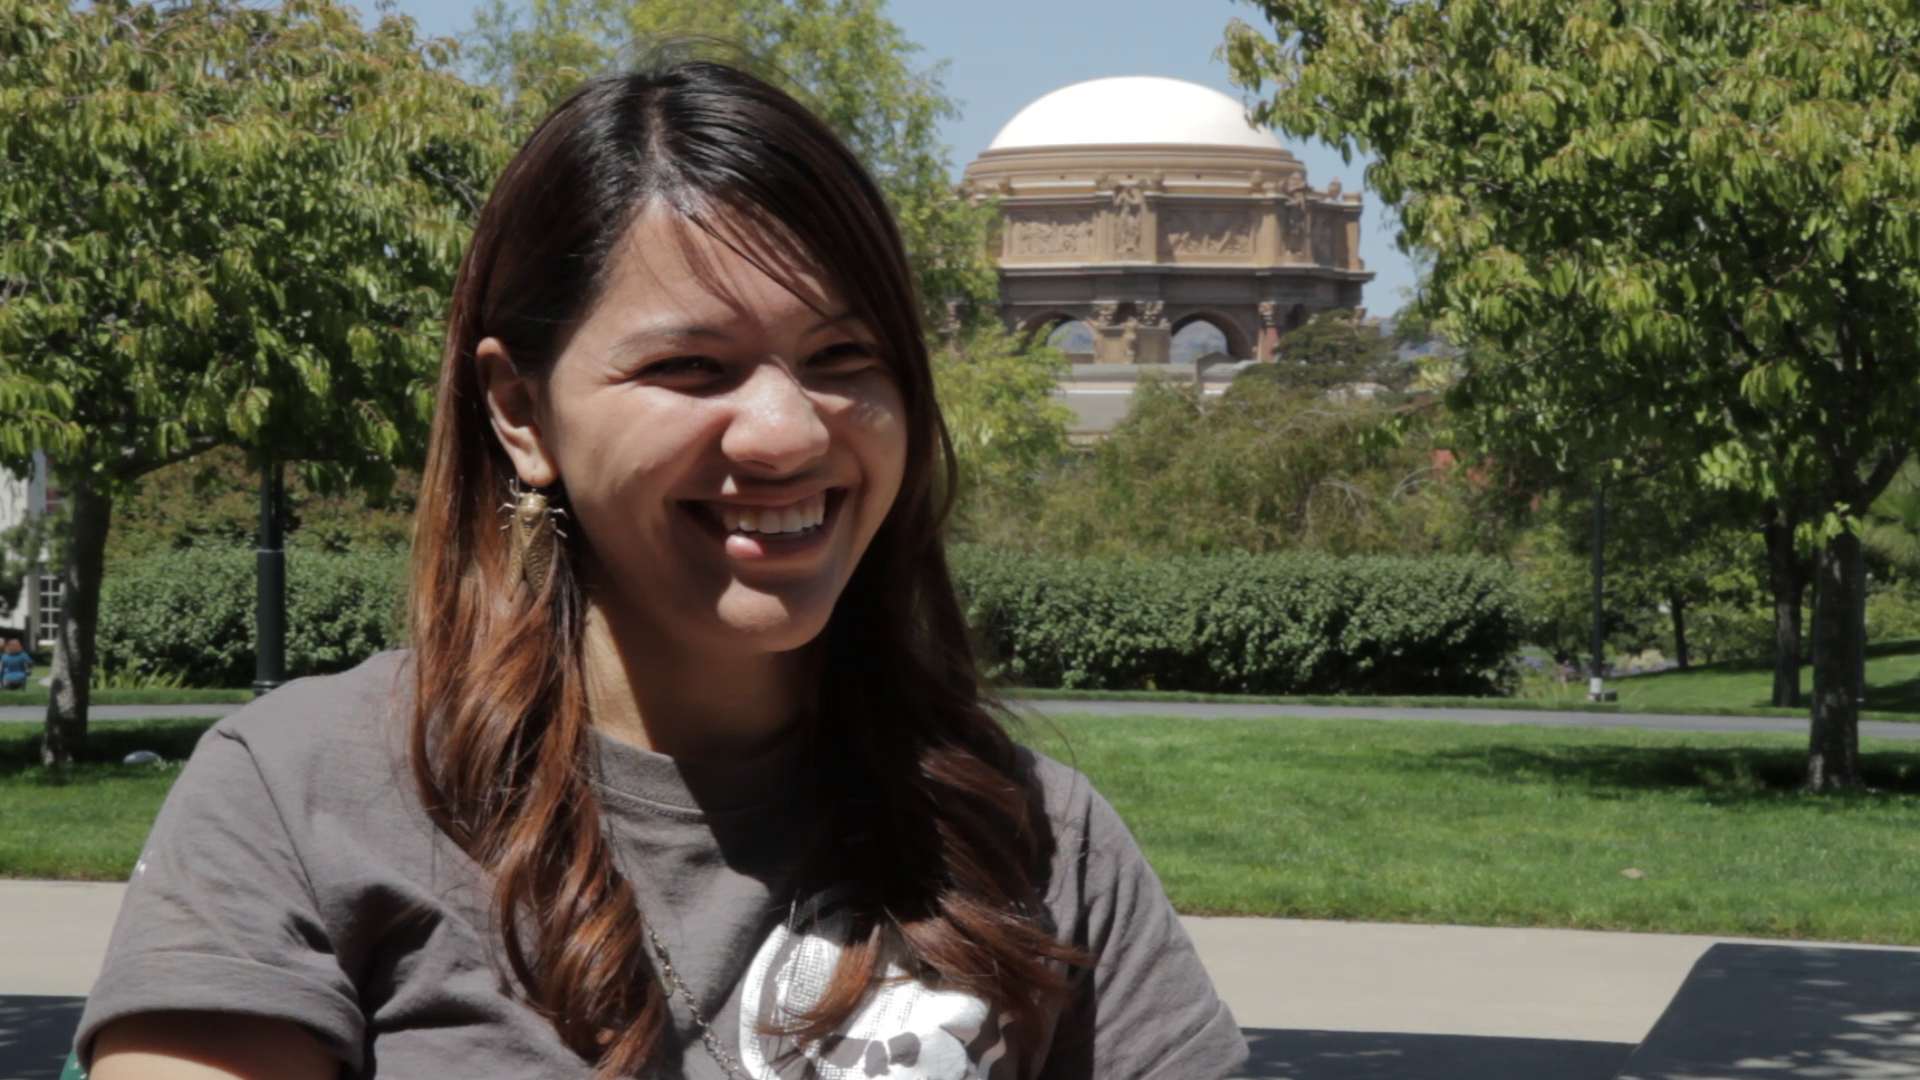 Female intern wearing a brown t-shirt stands in front of the Palace of Fine Arts